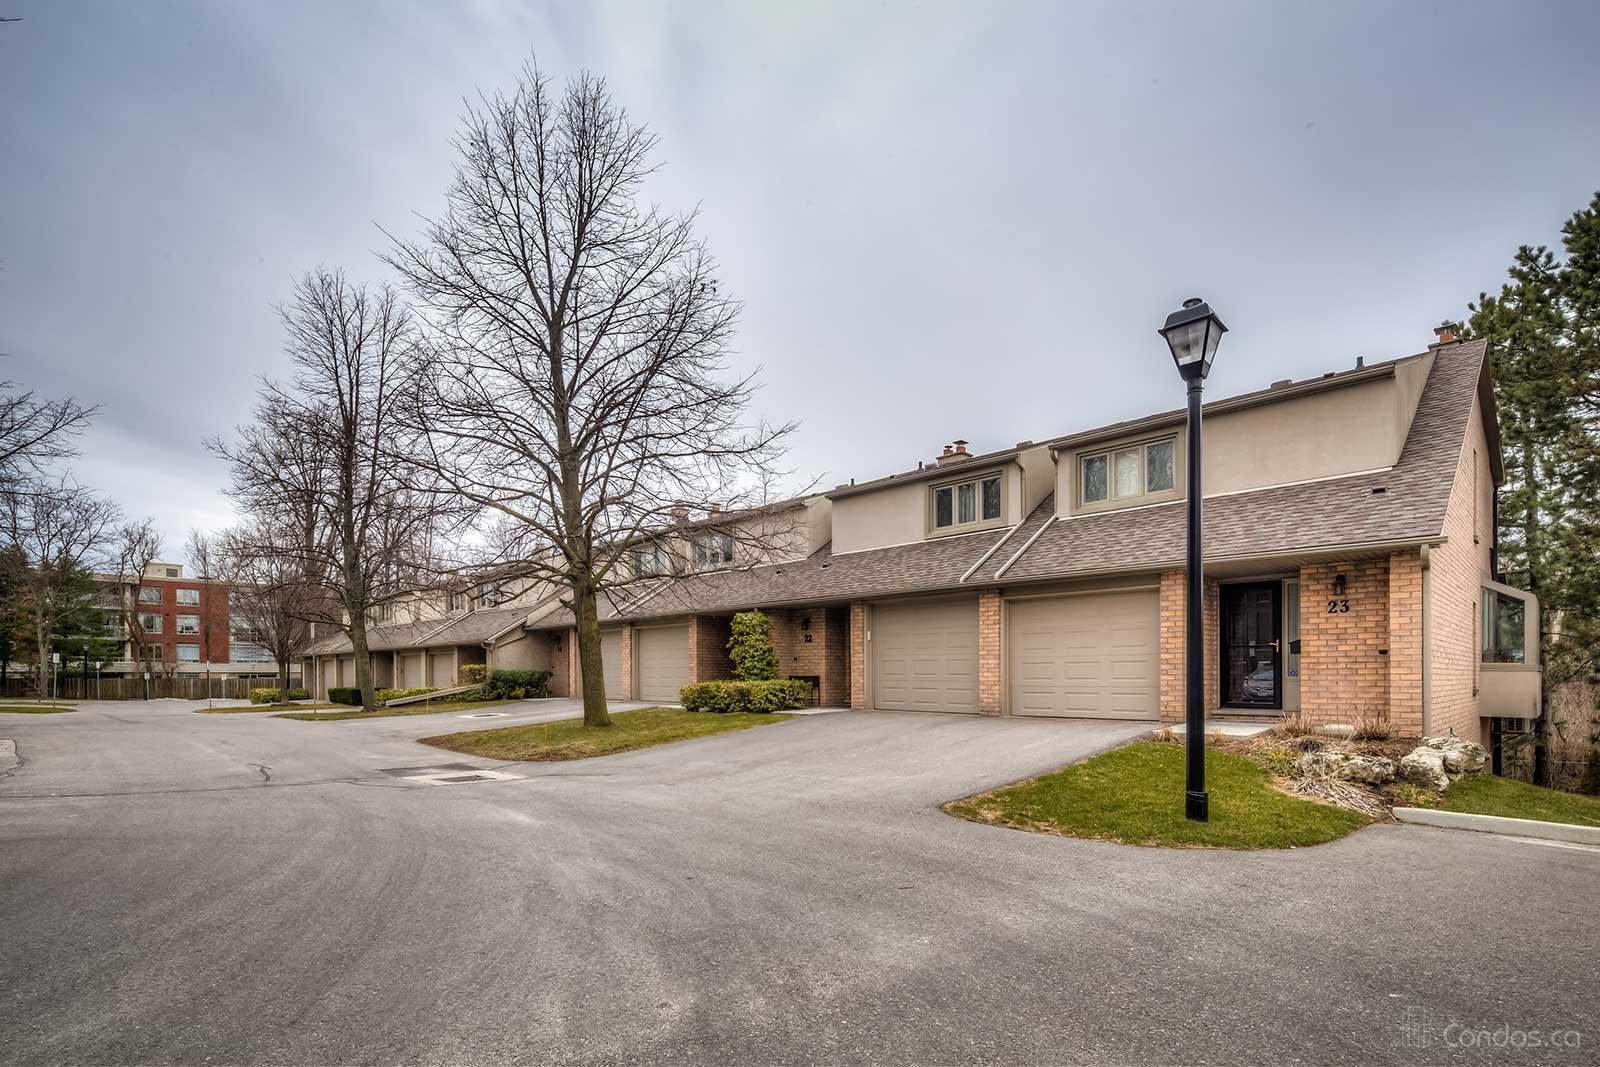 109 Wilson Condos at 109 Wilson St W, Ancaster 1